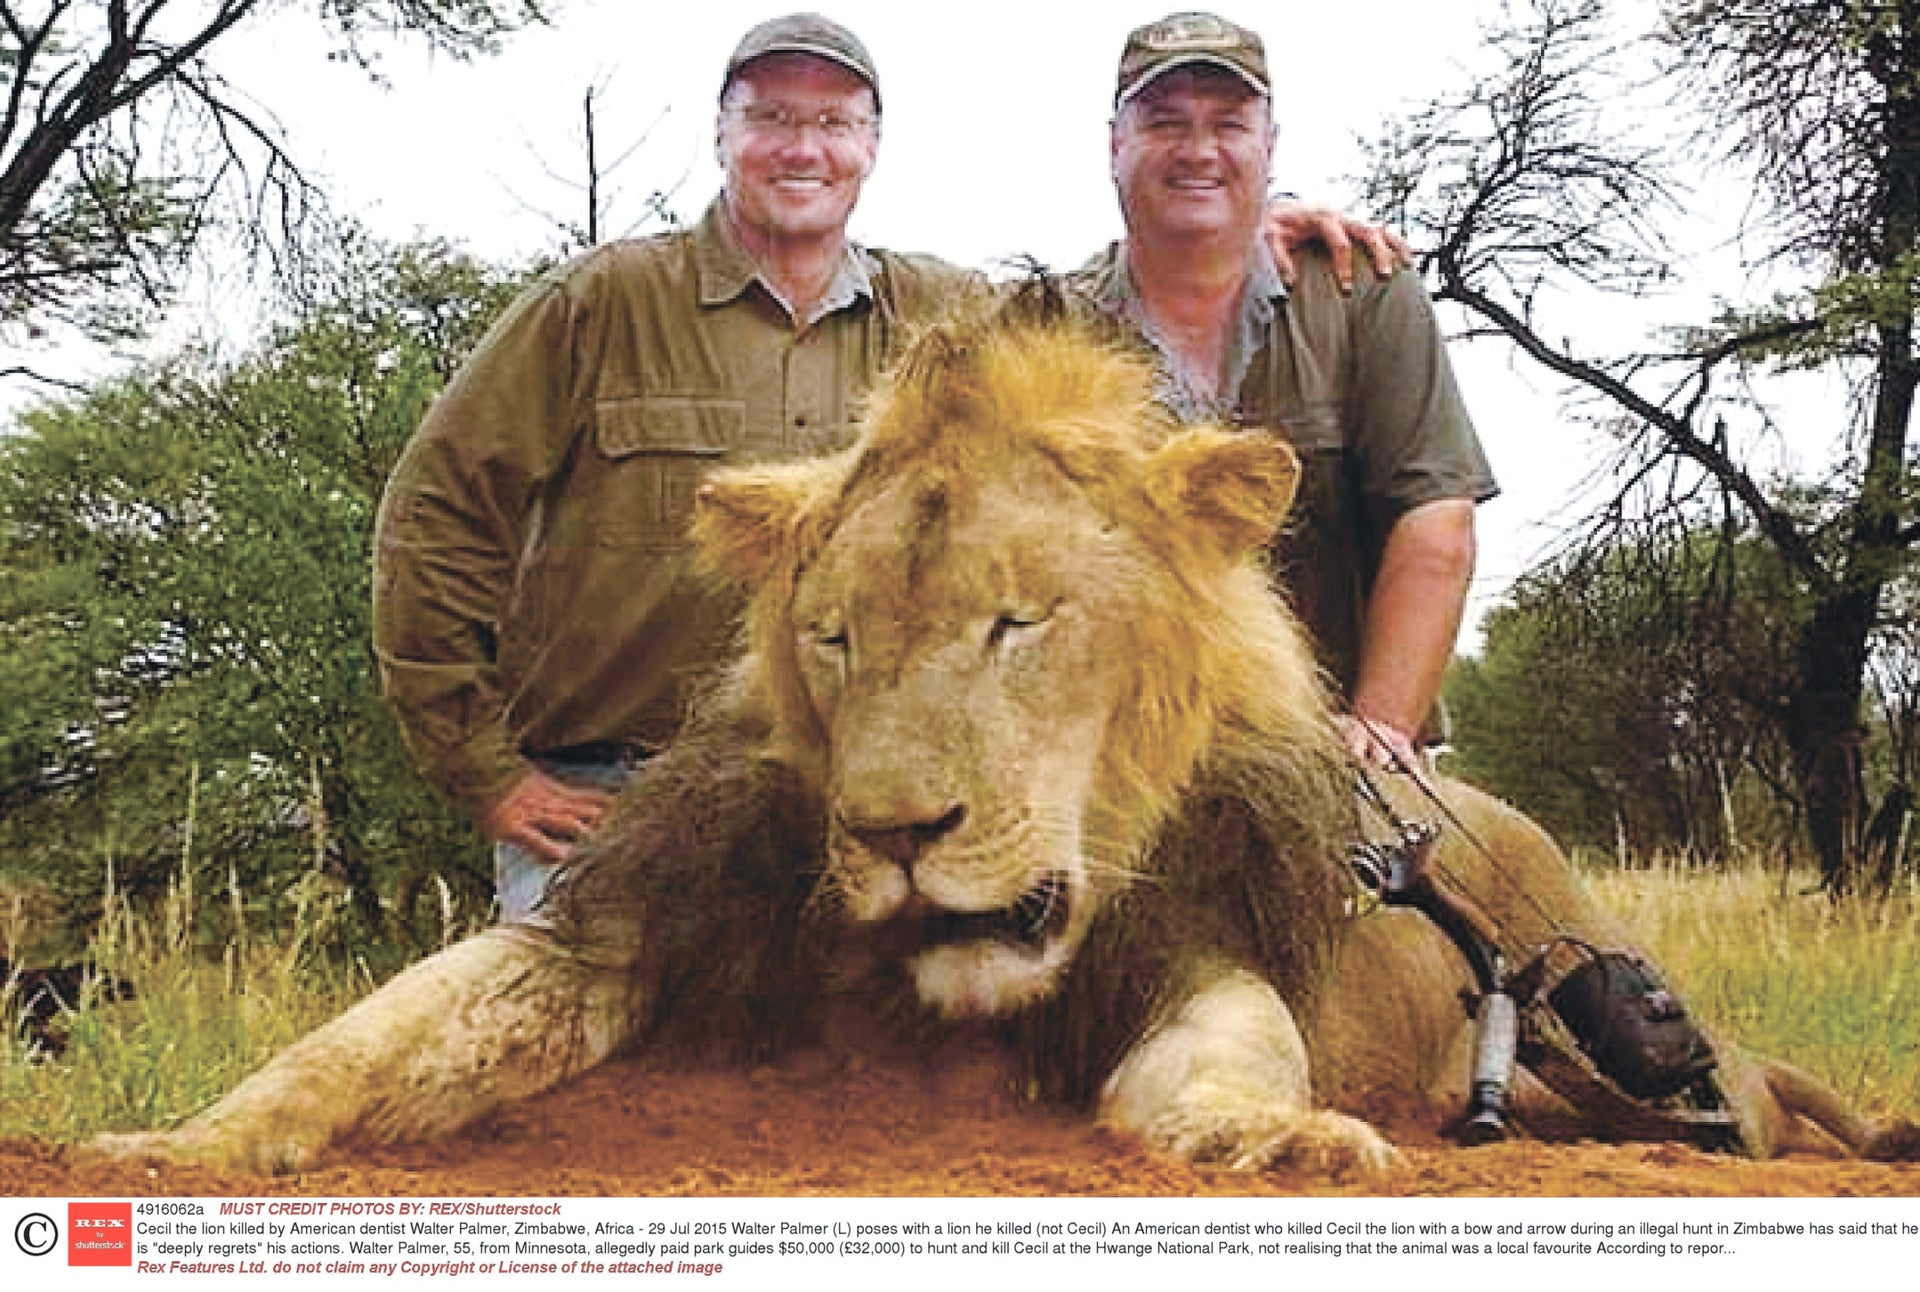 The death of Cecil the lion, who was hunted by an American dentist, Walter Palmer, in Zimbabwe in 2015, caused global outrage.